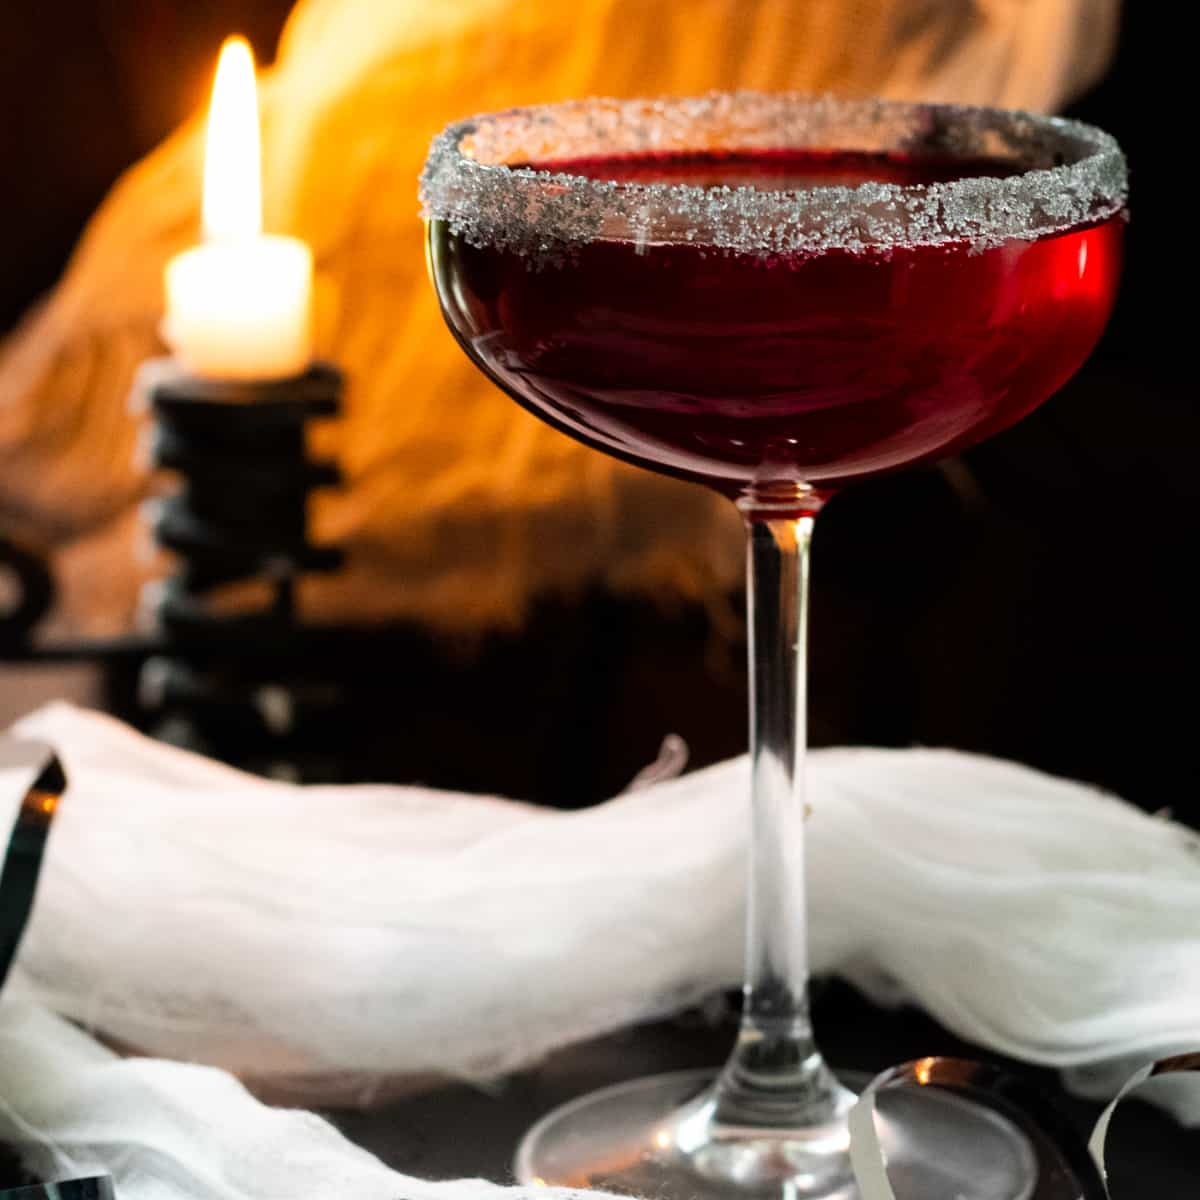 vampire margarita with a candle and cob webs in the background